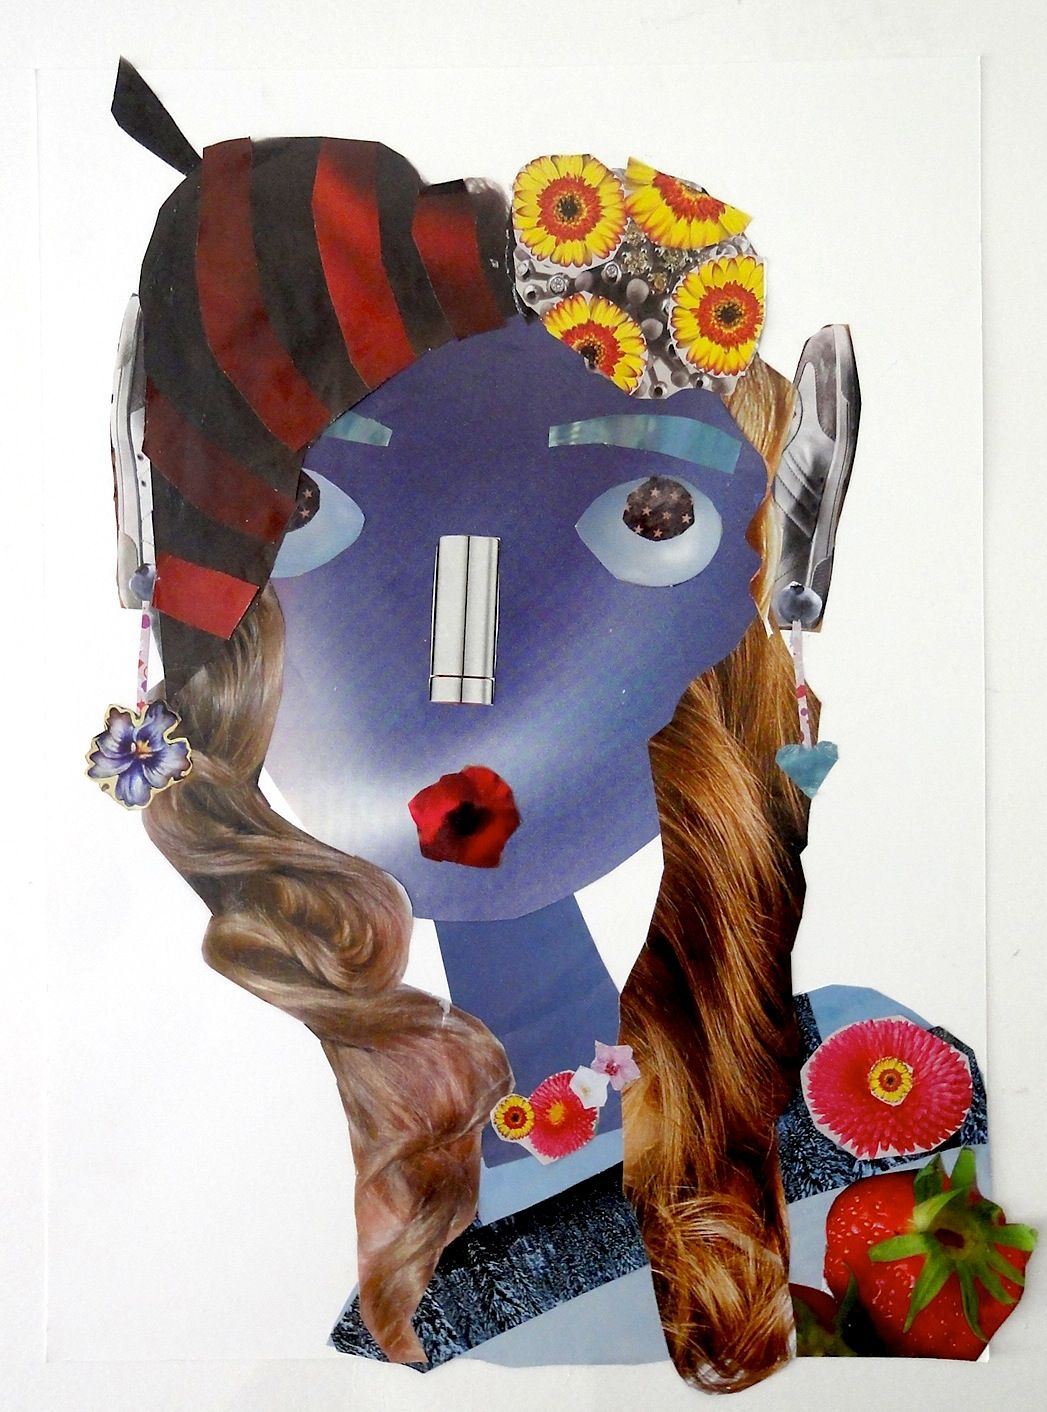 A Face Collage | Pinterest | La cara, Plástica y Retrato